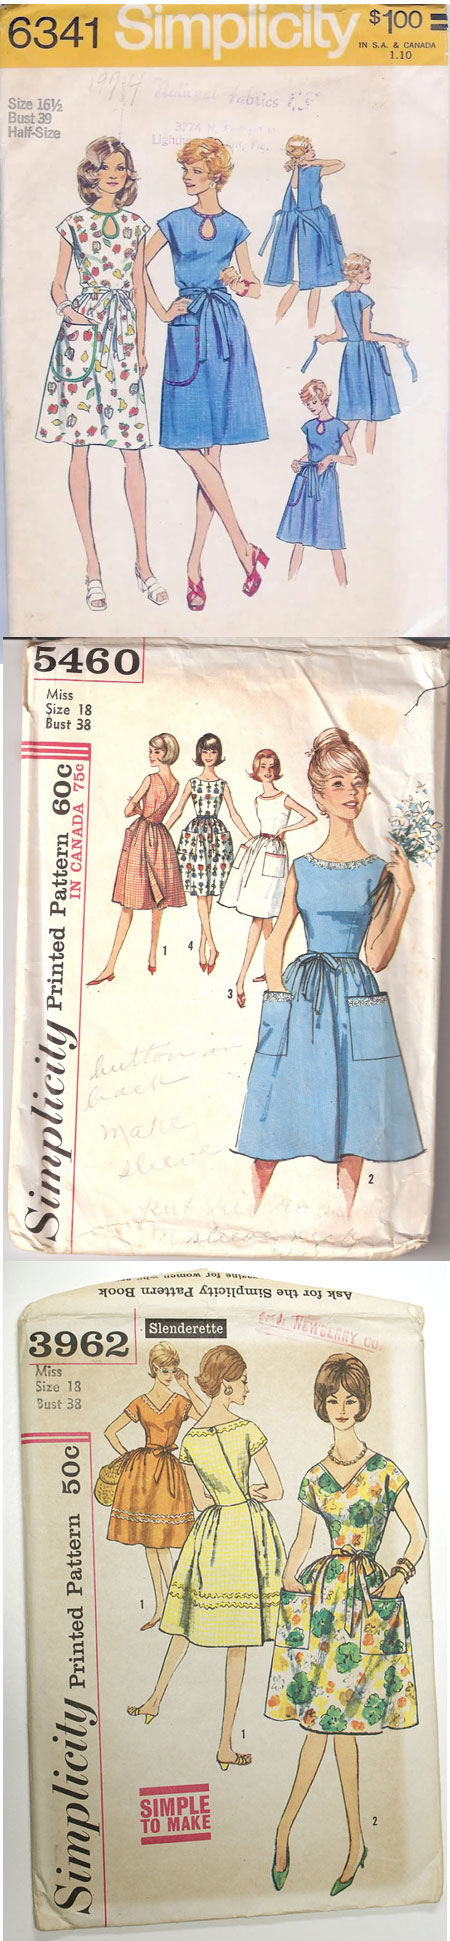 vintage-patterns-from-etsy